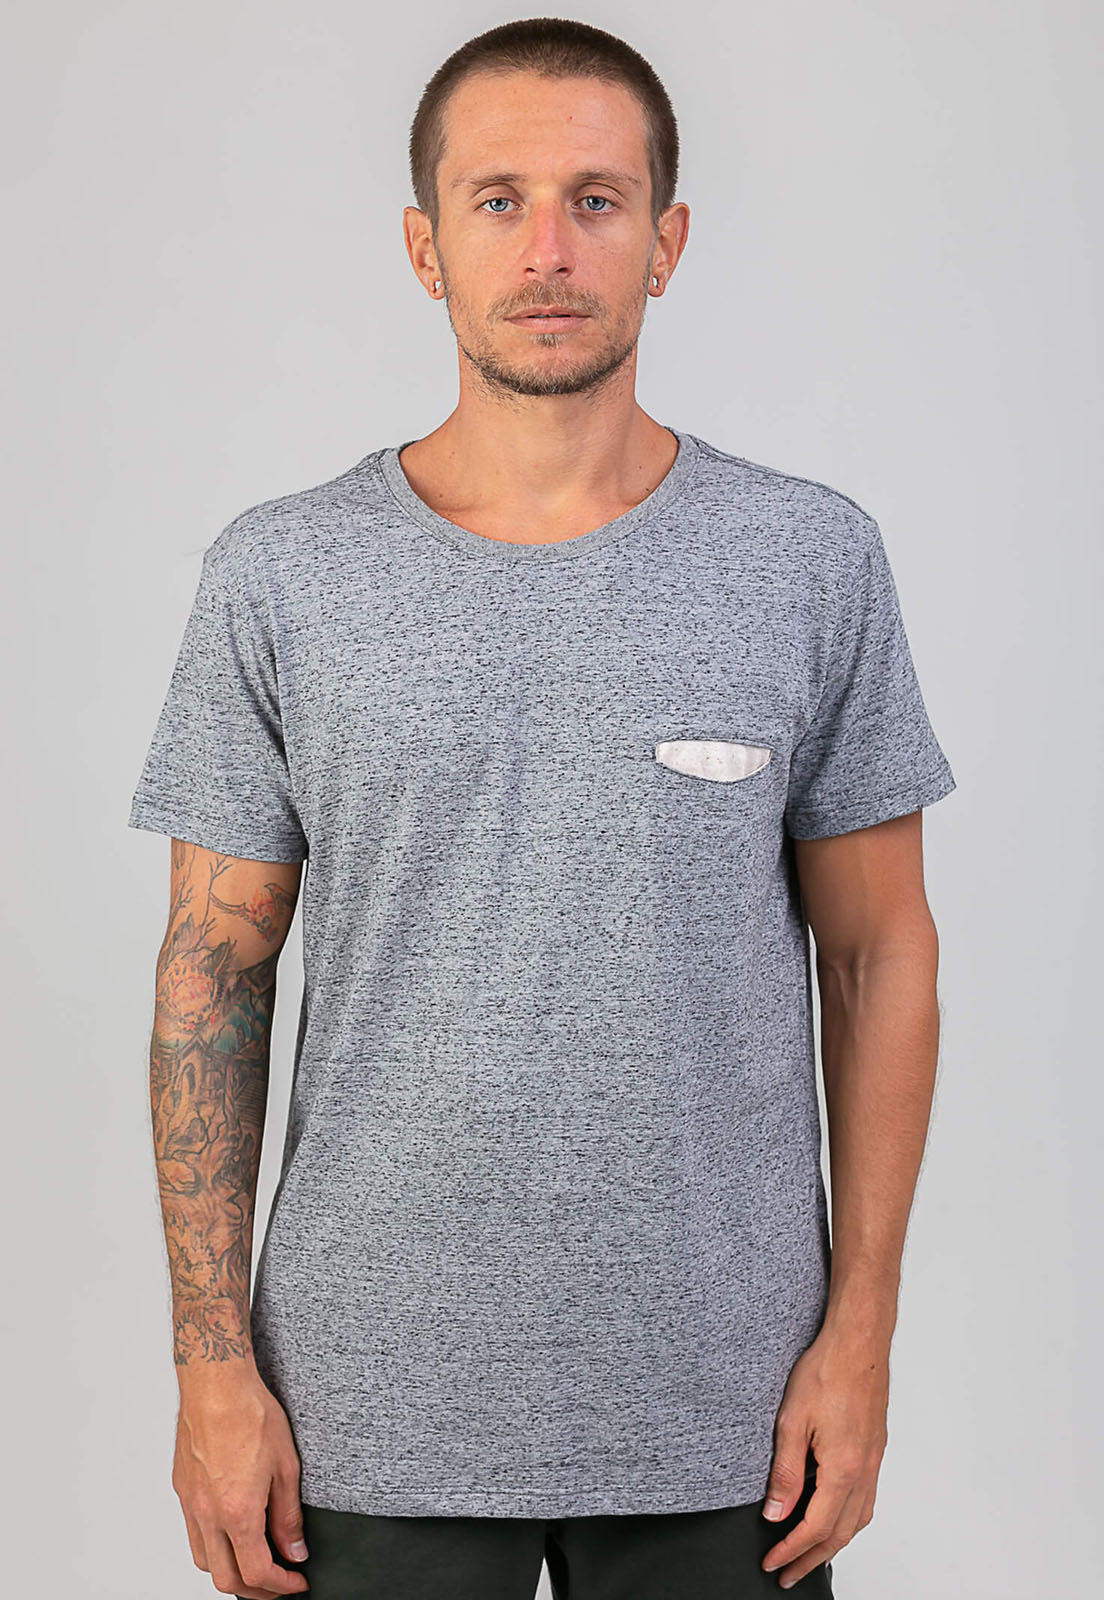 T-Shirt Recover melty  - melty surf & Co.